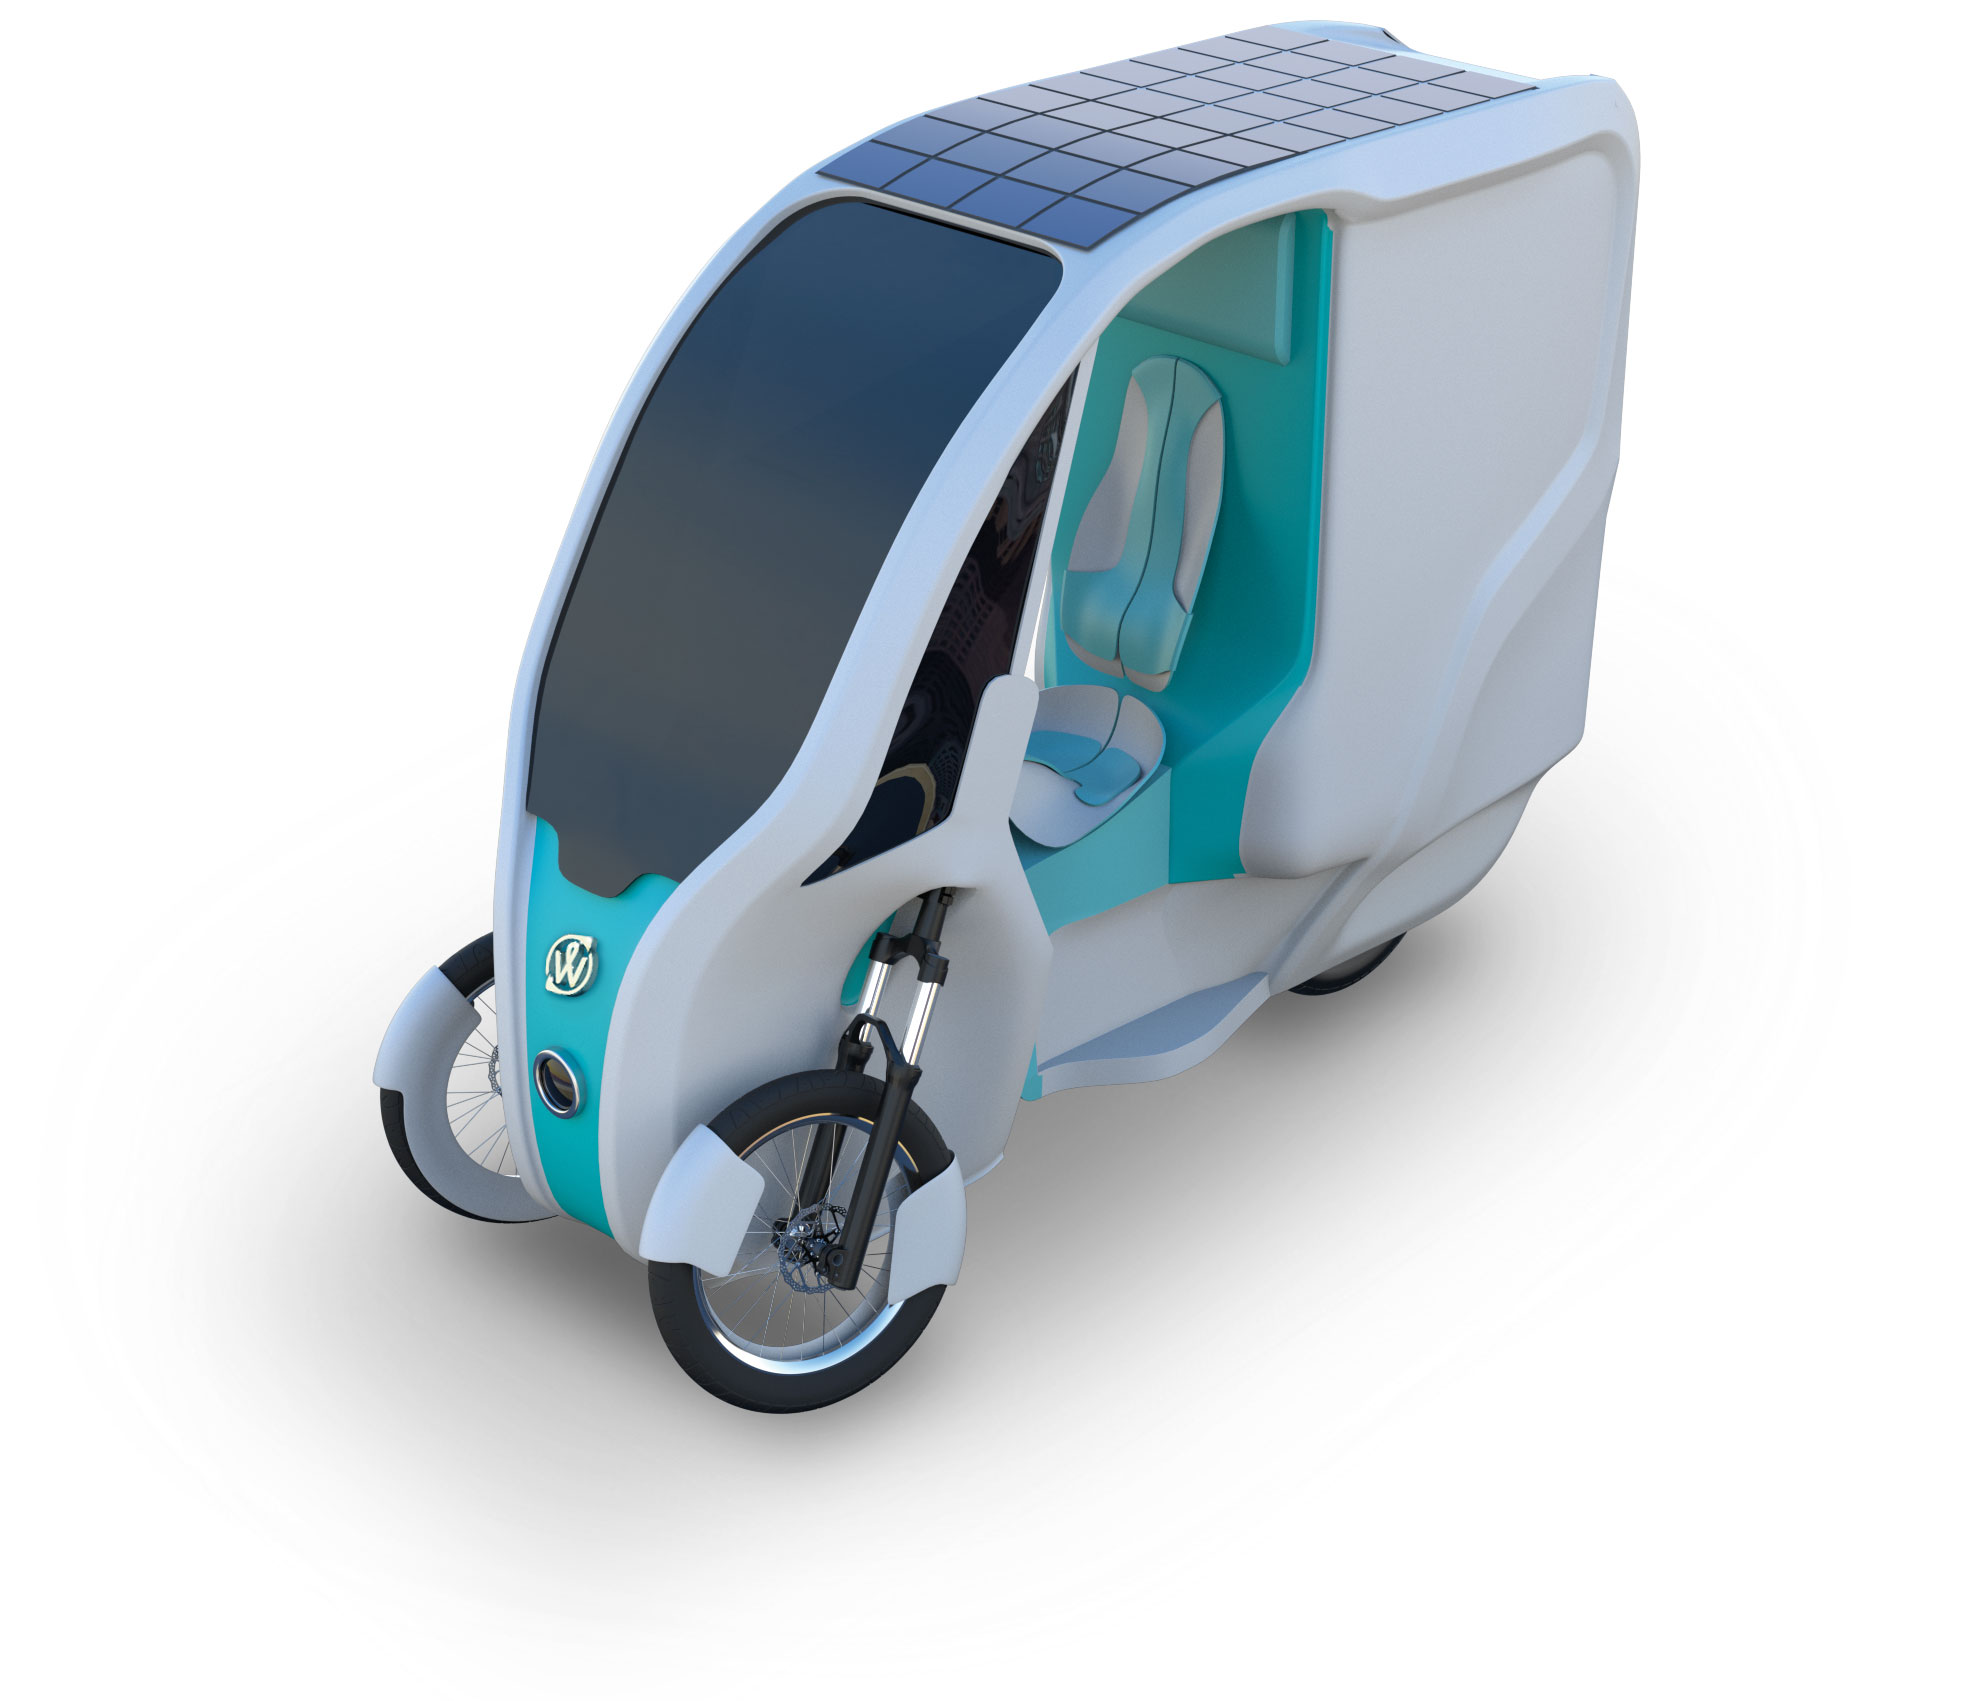 3D Image of a Solar Tricycle